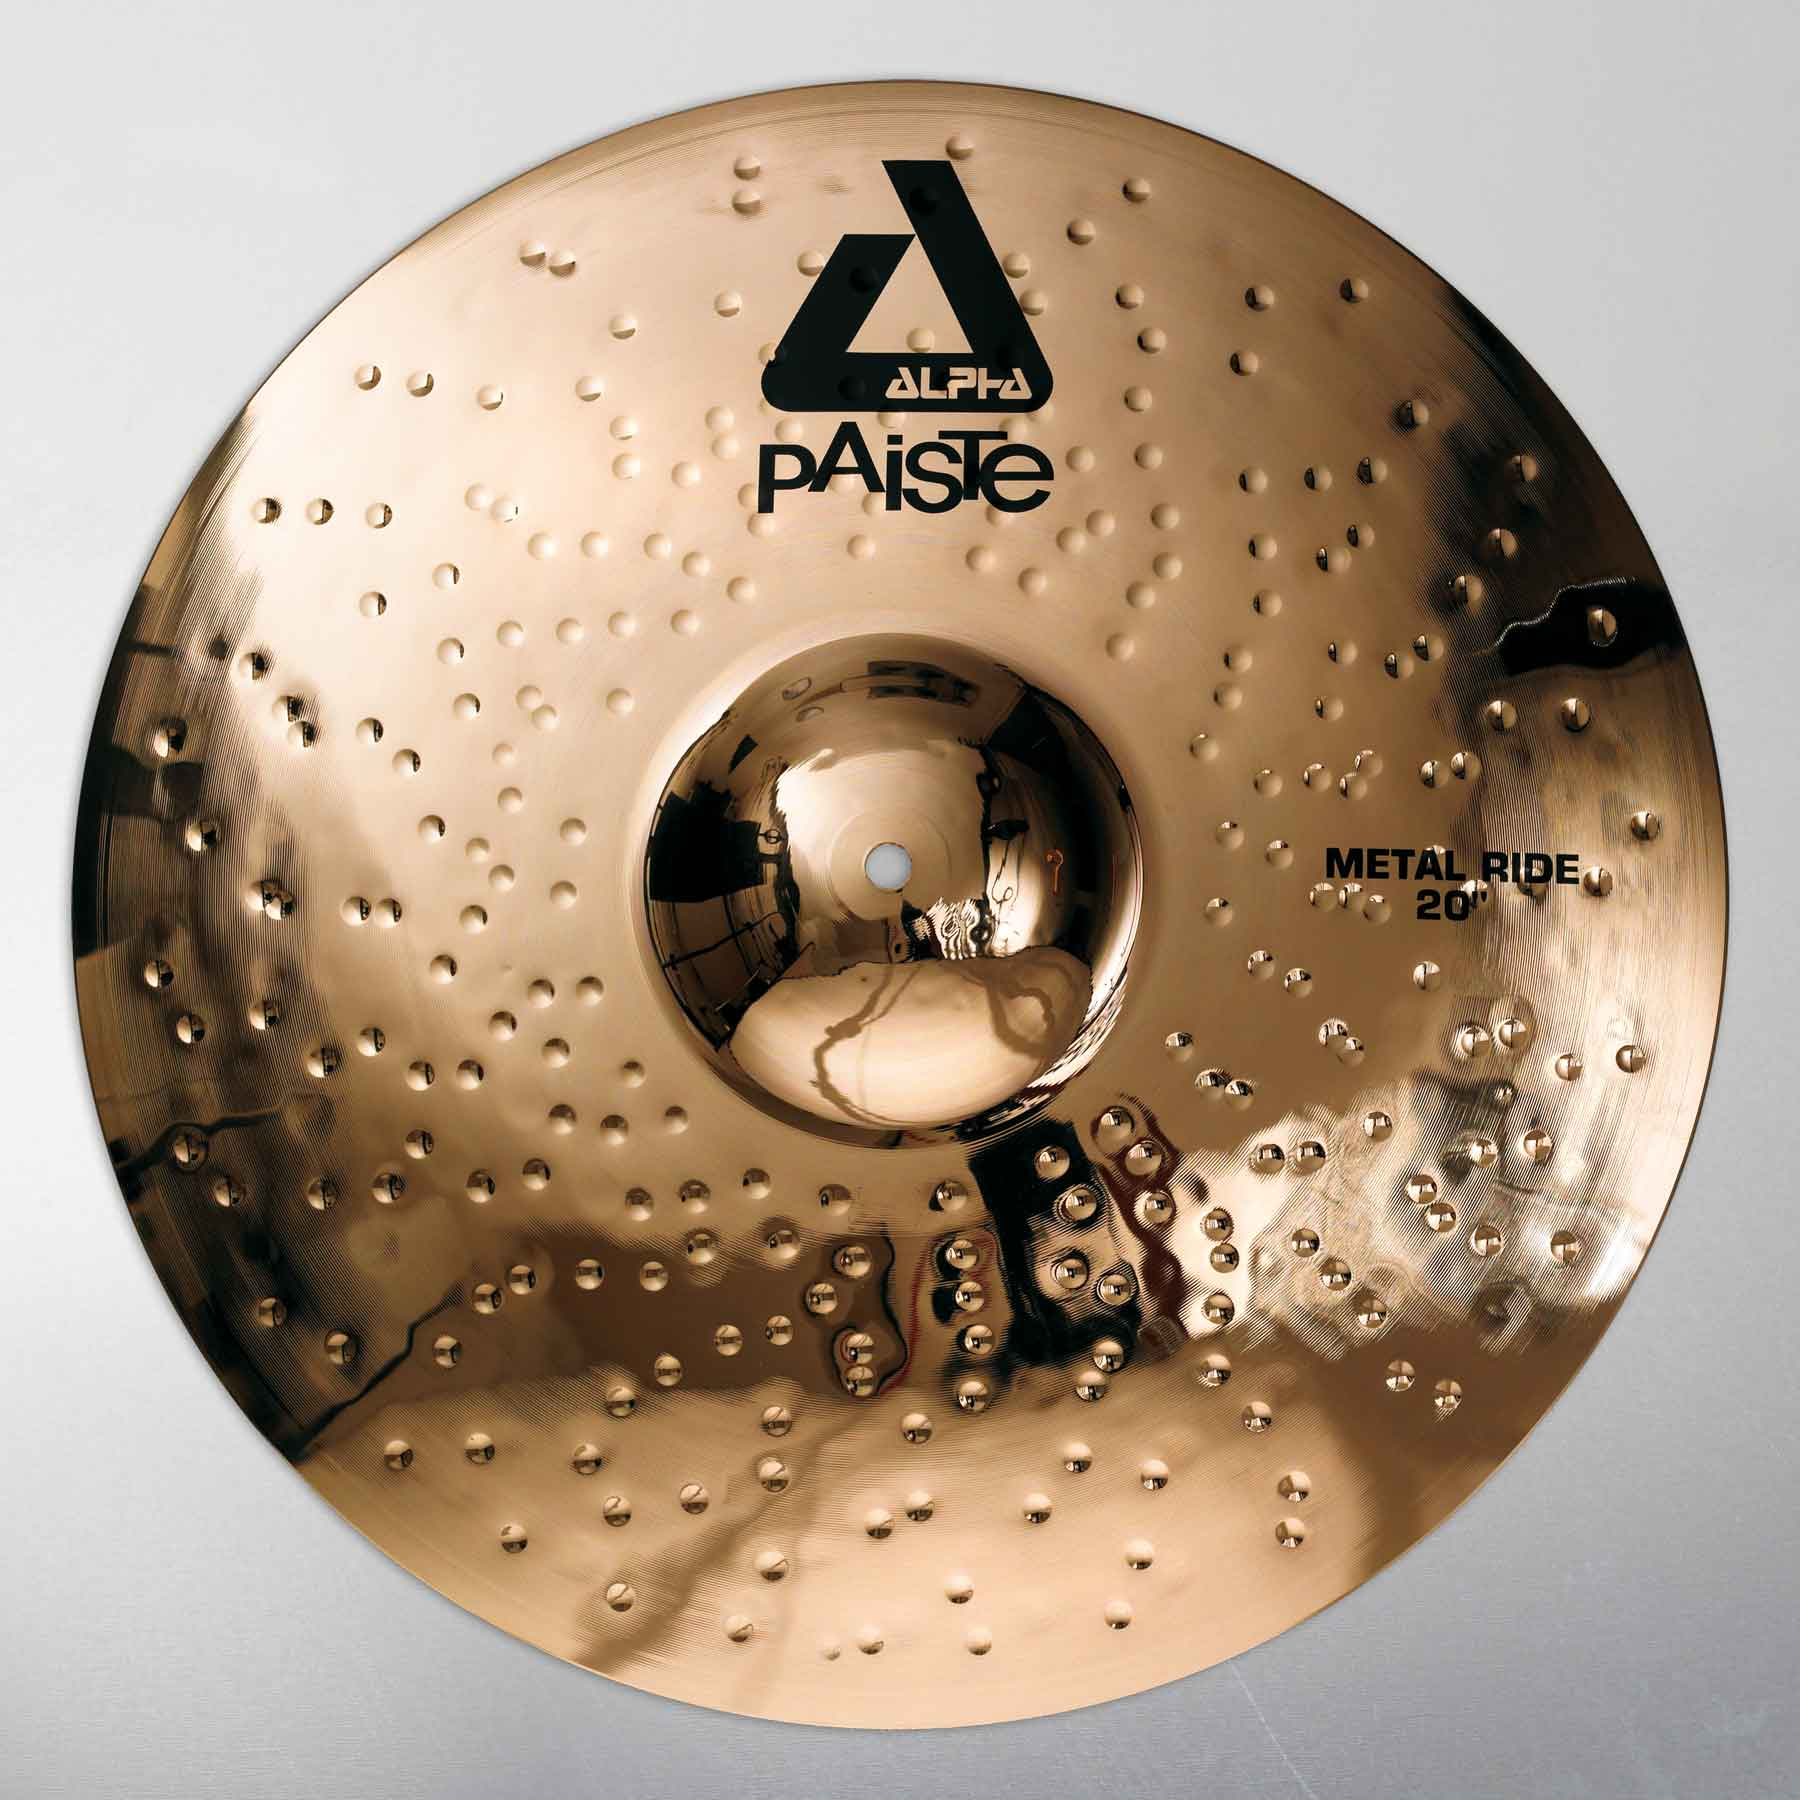 Paiste Logo Alpha Design Corporate Design